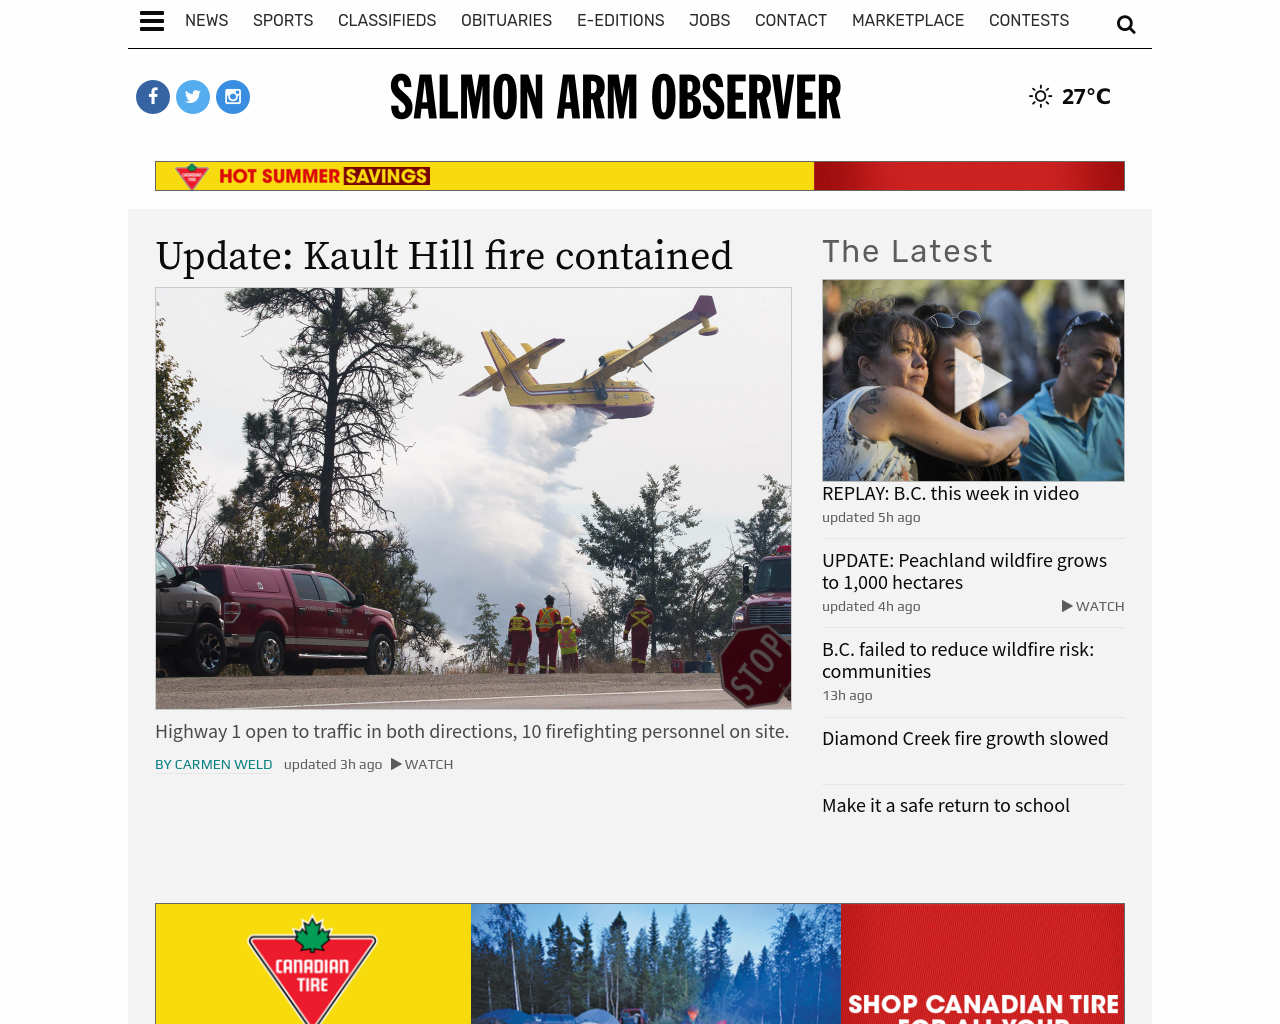 Salmon-Arm-Observer-Advertising-Reviews-Pricing